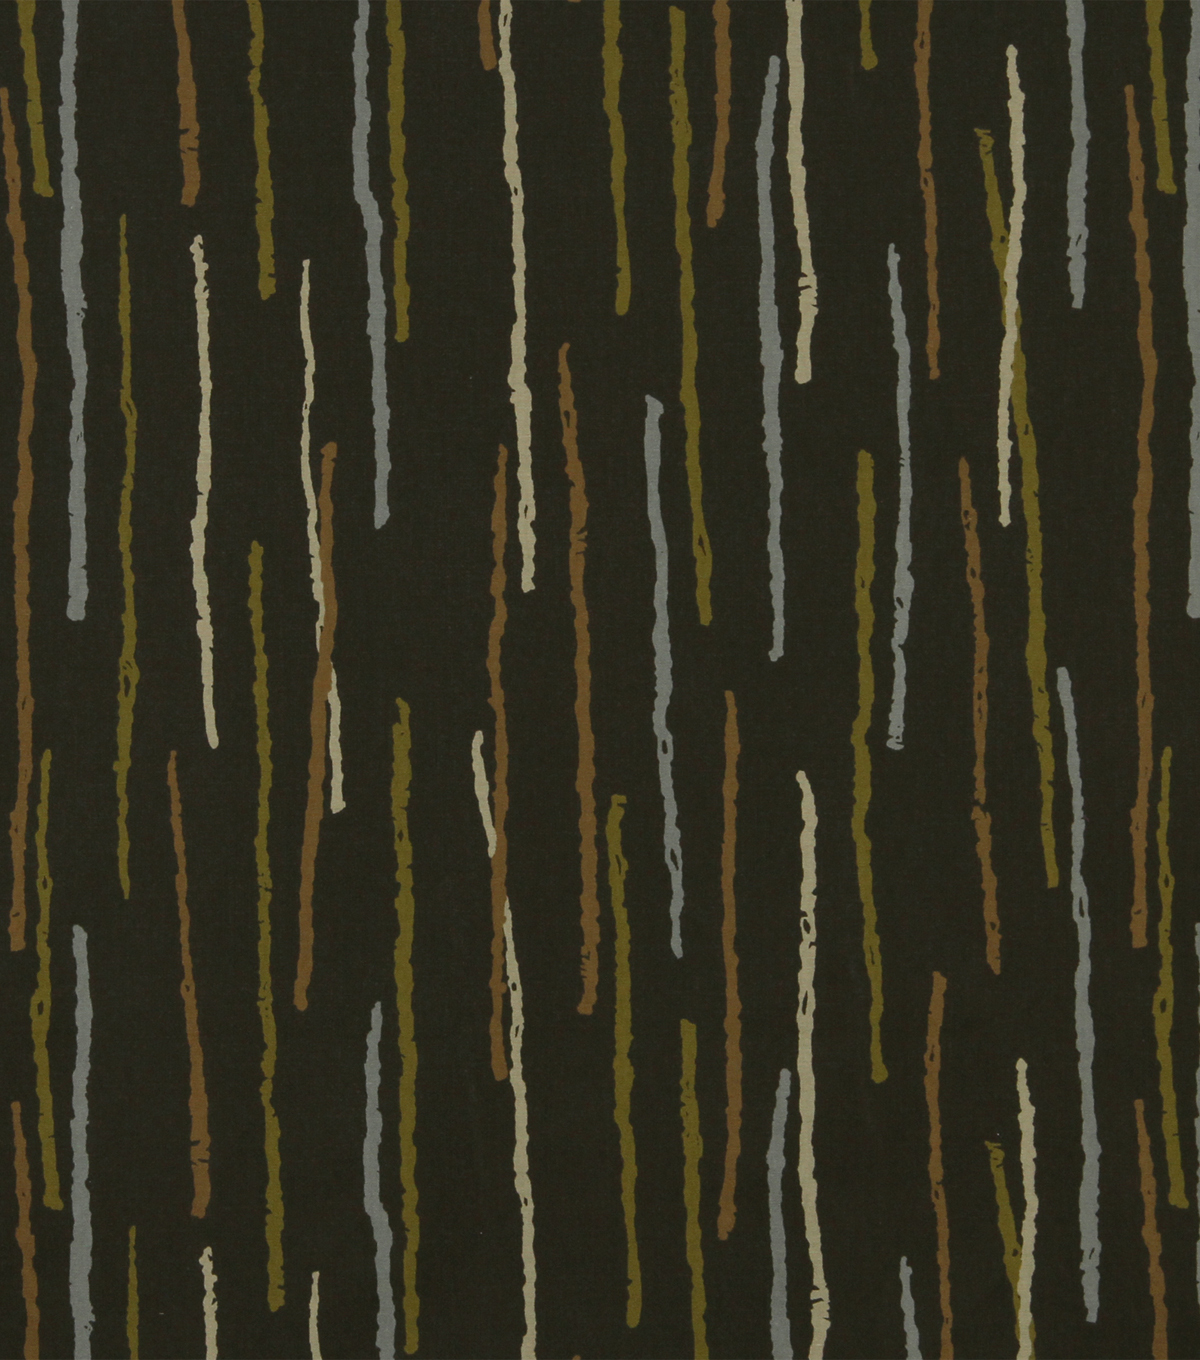 Home Decor 8\u0022x8\u0022 Fabric Swatch-Robert Allen Abstract Lines Espresso